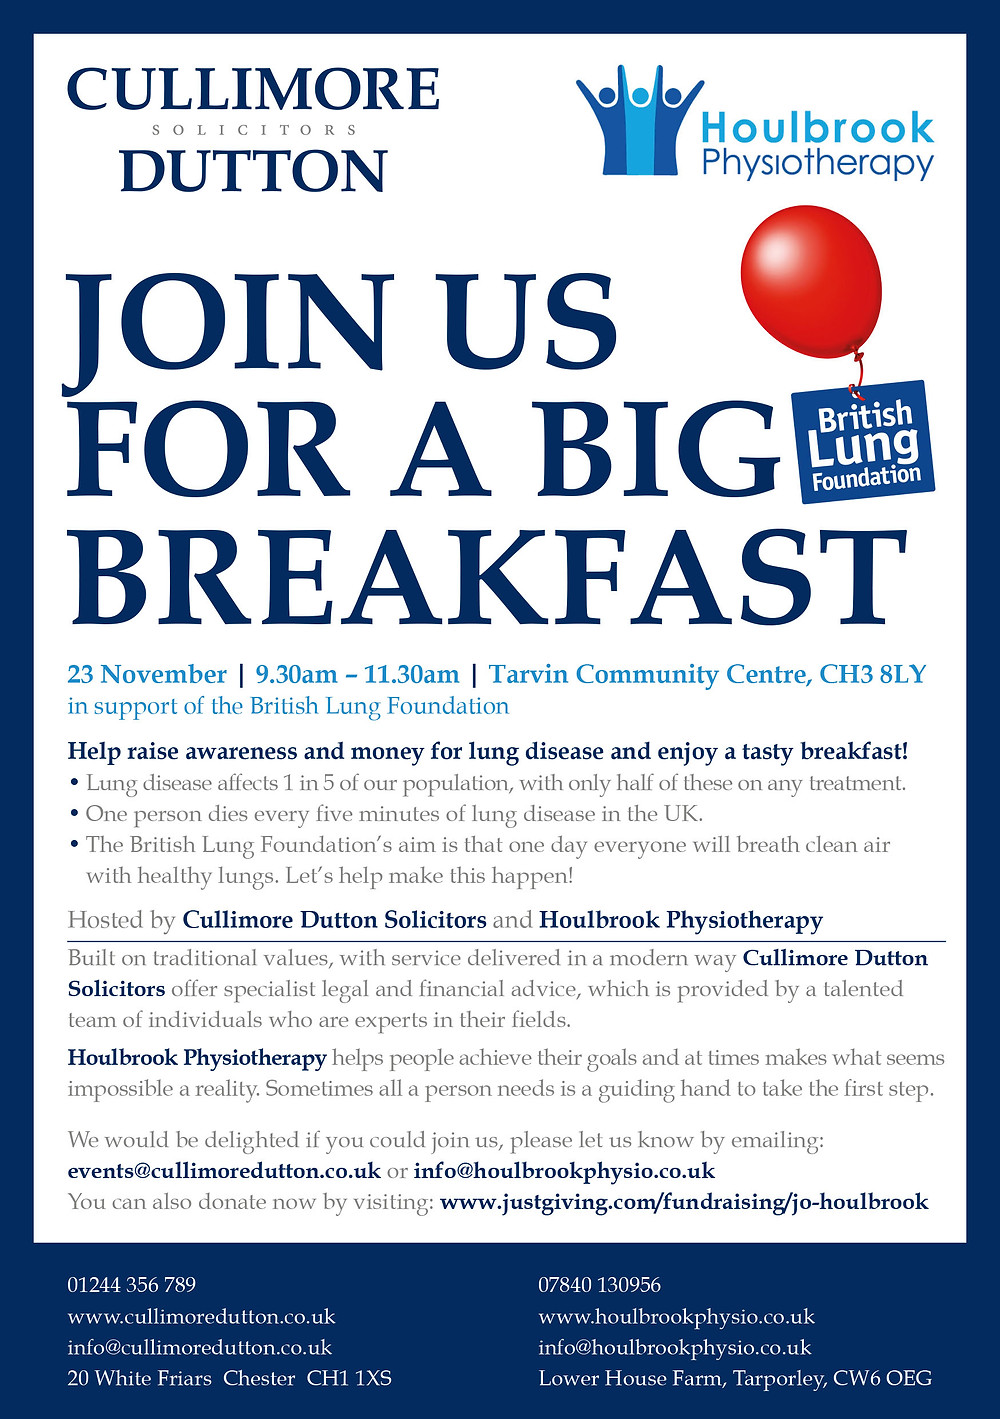 I'm very excited to be co-hosting a Big Breakfast event with Cullimore Dutton Solicitors in support of the British Lung Foundation! Please RSVP if you can make the event on the emails in the flyer and I really hope to see you there! If of course you can't make it but would still like to support the event you can donate at www.justgiving.com/fundraising/jo-houlbrook